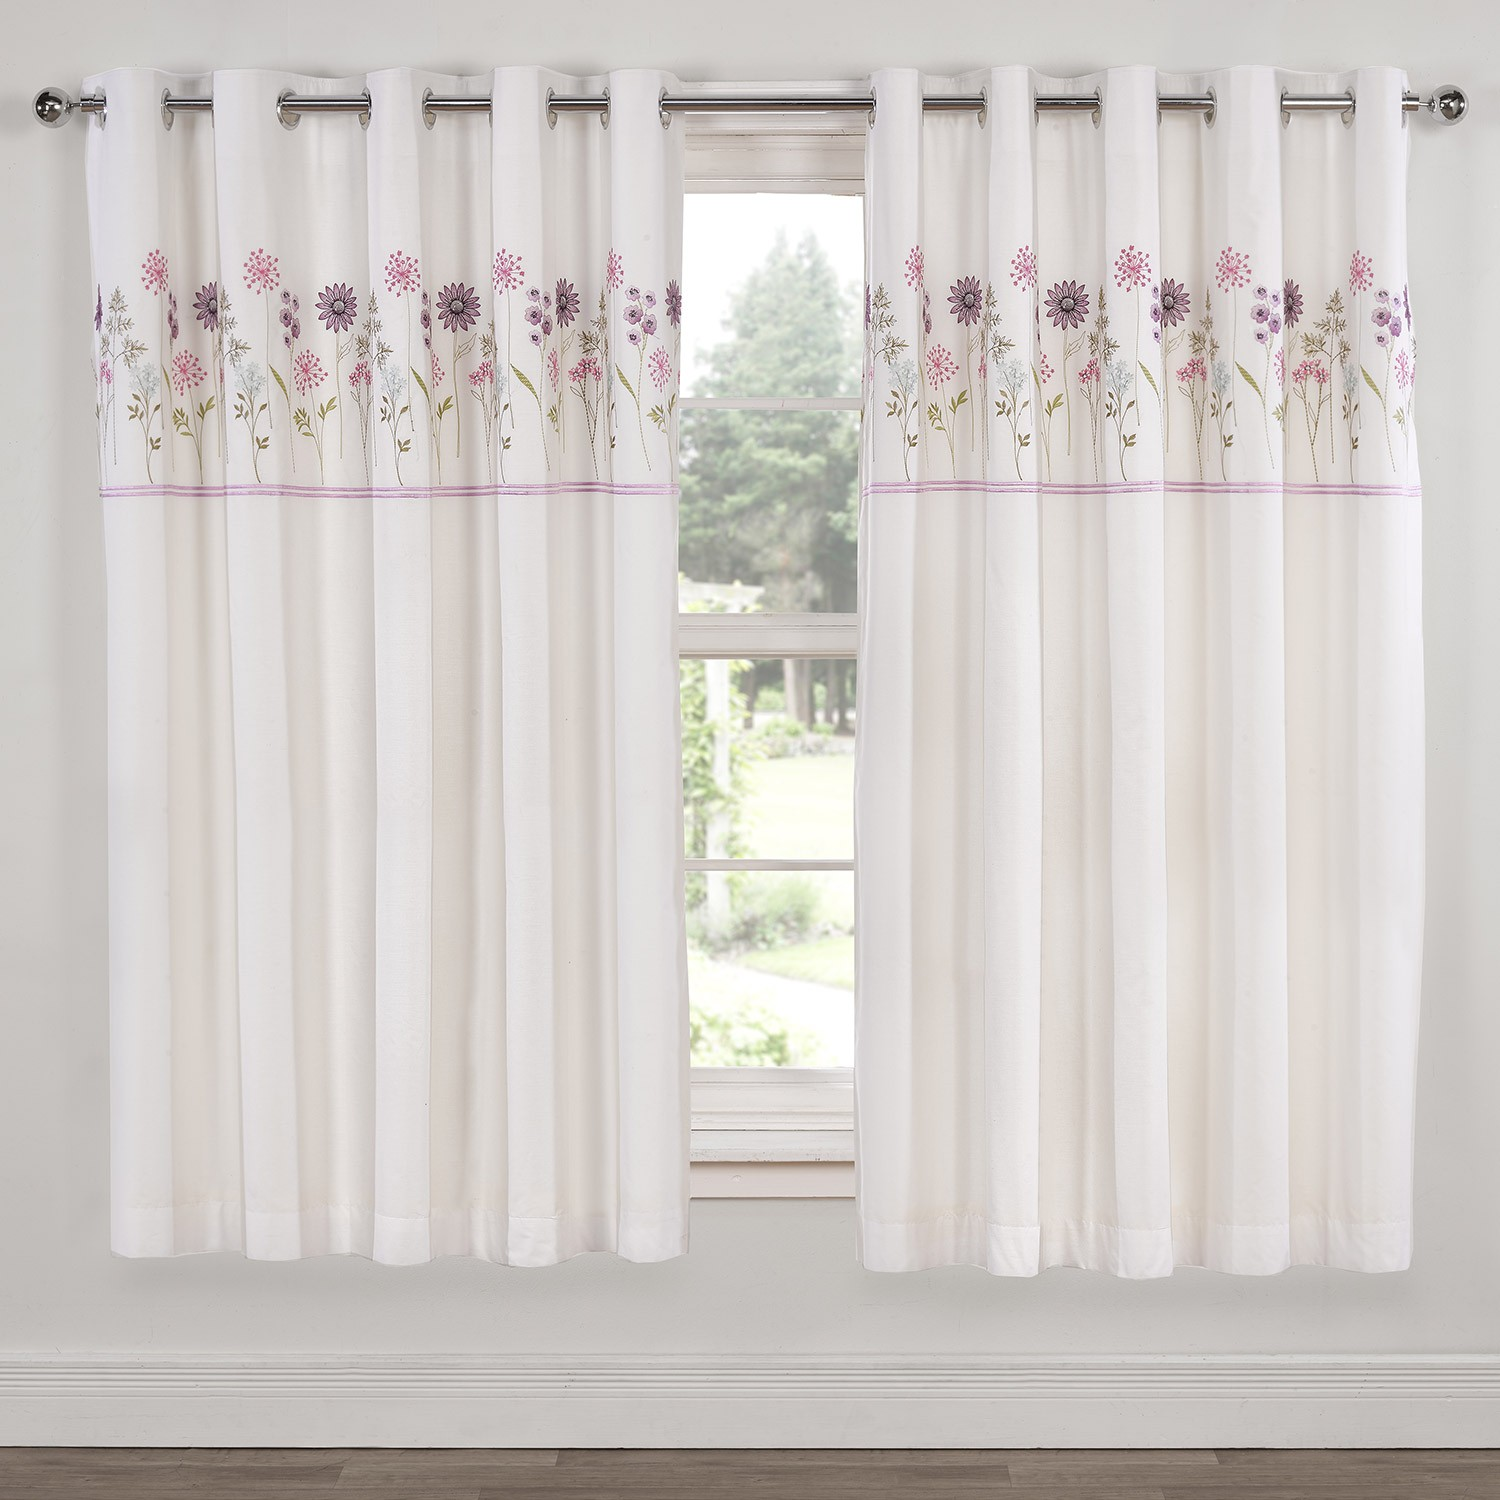 Luxury Interior Home Decorating Ideas with Embroidered Curtains: Embroidered Curtains | Funky Curtains And Drapes | Anthropologie Wandering Pleats Curtains